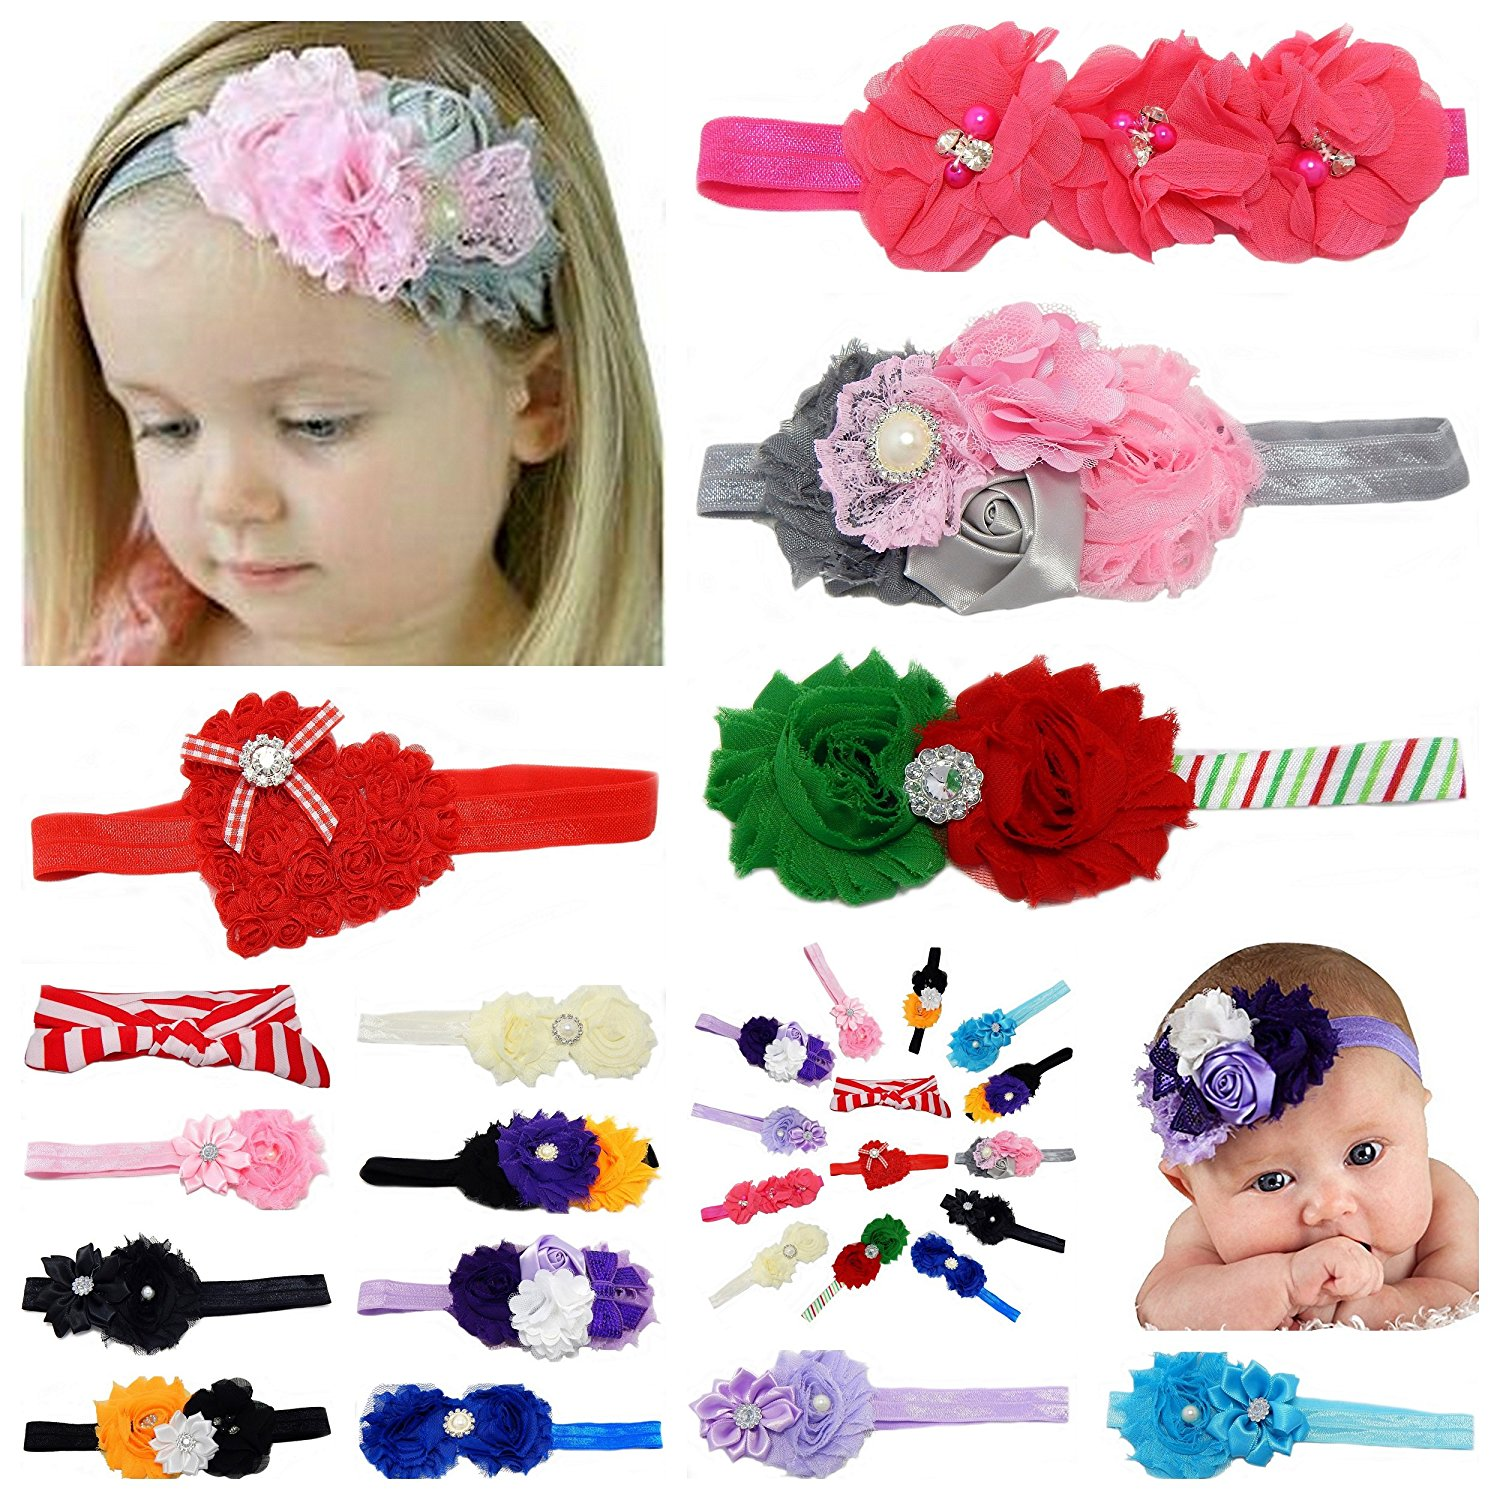 14pcs Lots Mix Baby & Girl Headbands with Hair Bow Flower for Photograph and Holiday